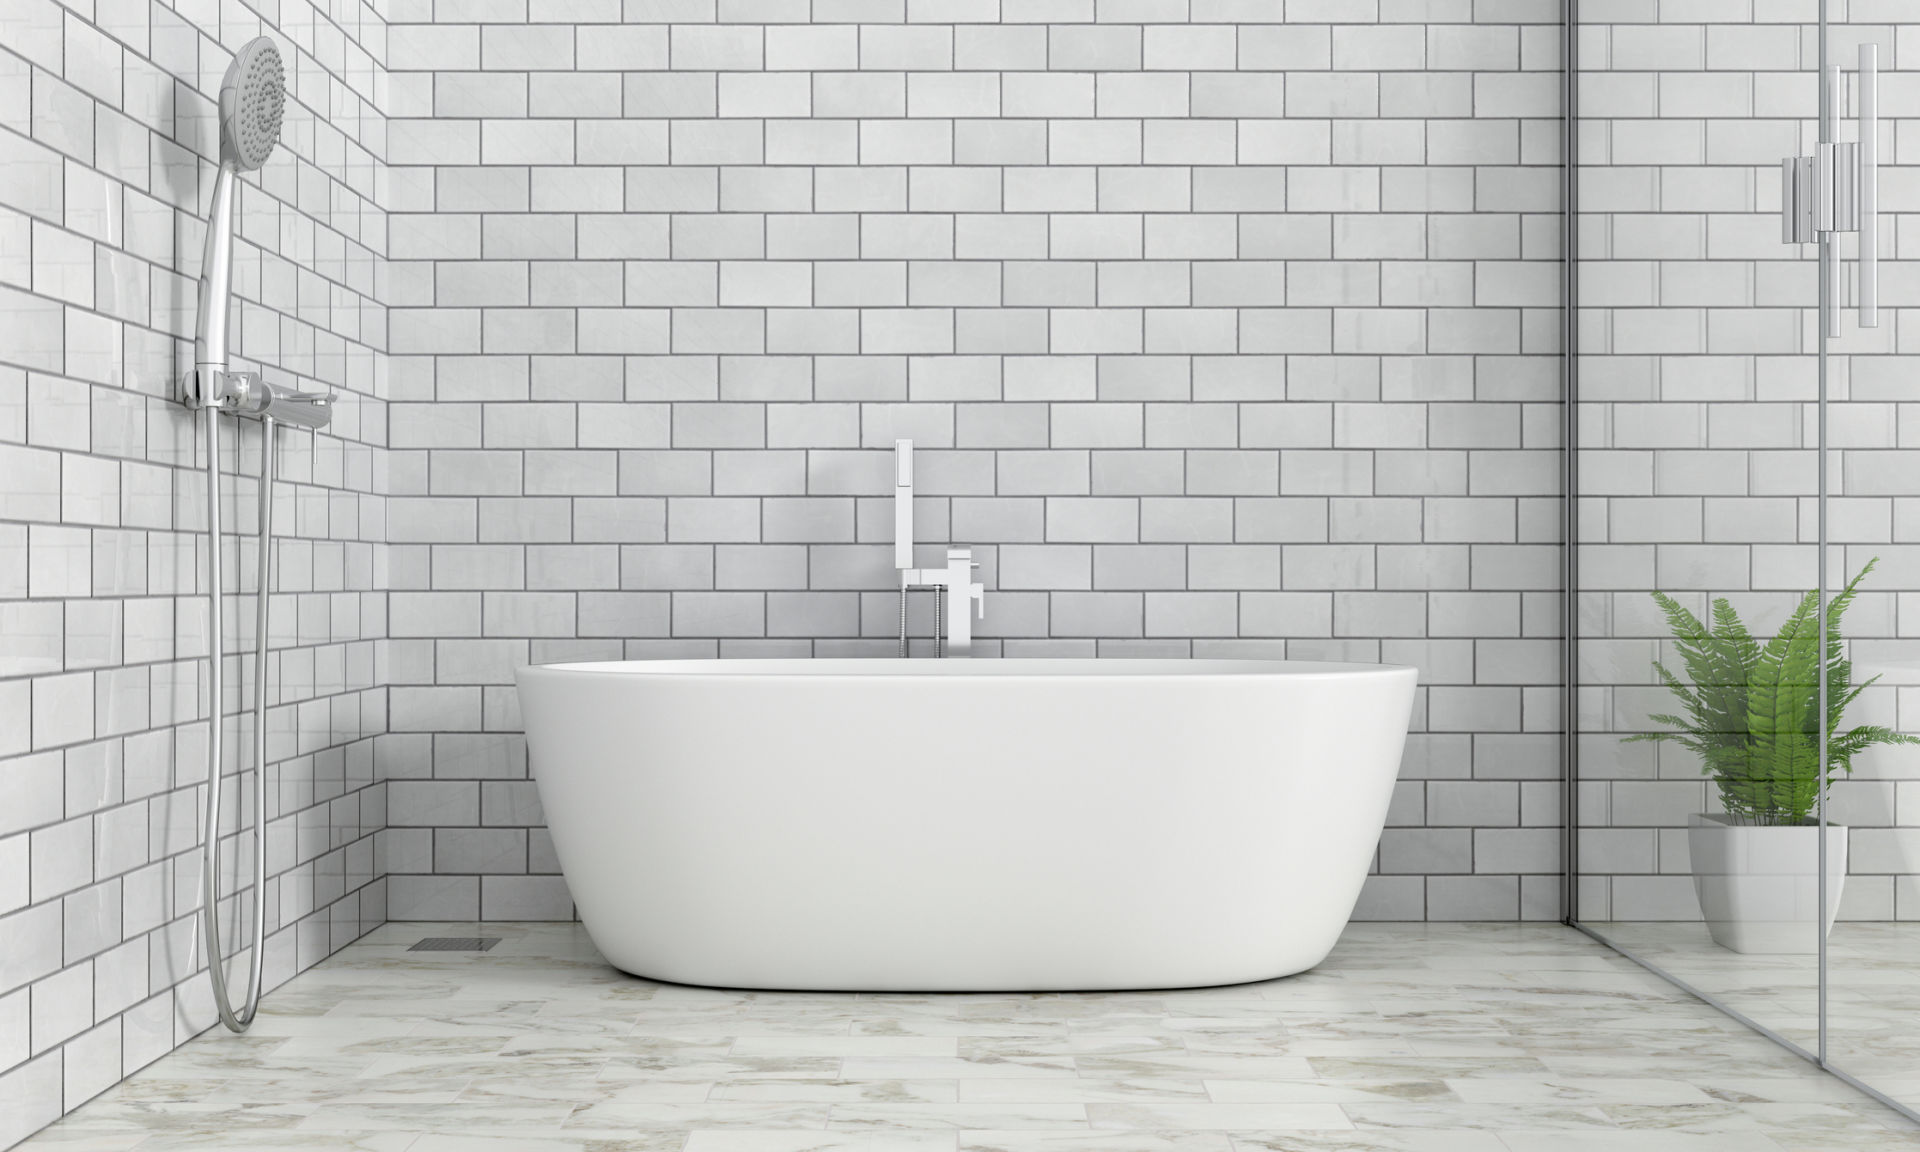 Hottest Bathroom Trends for Any Budget